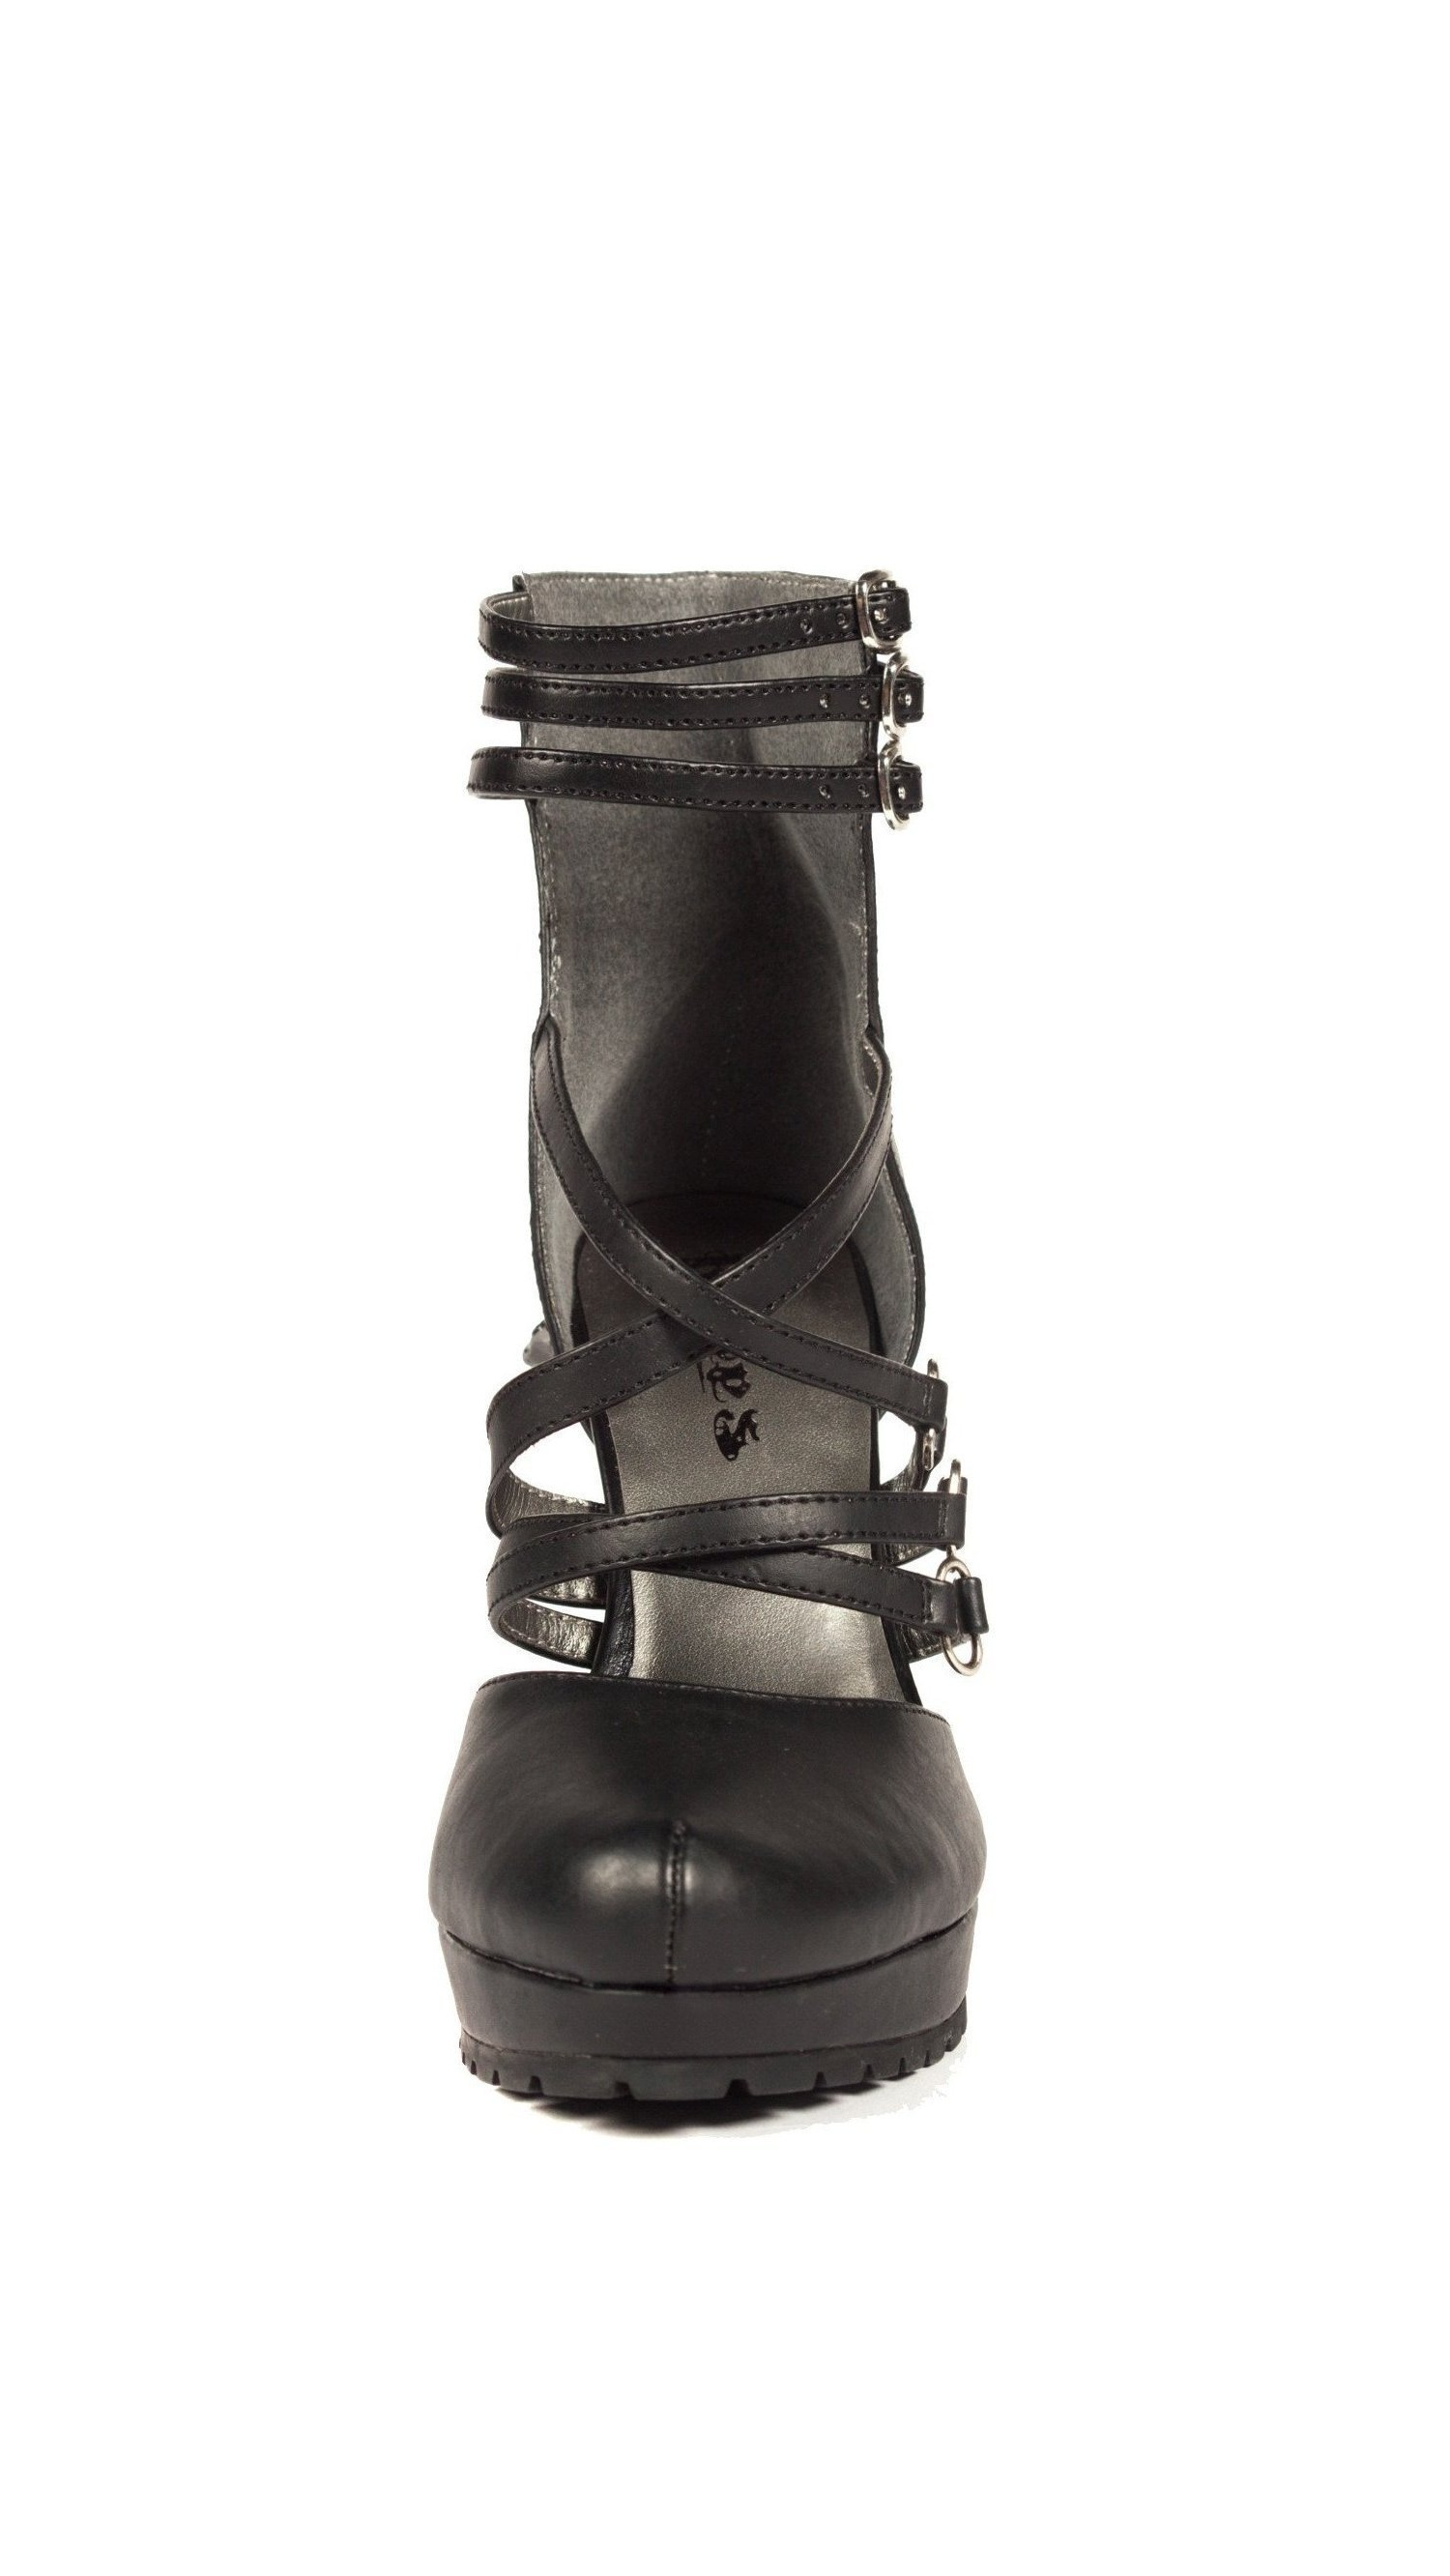 Hades Shoes H-VERNE Plain black front PU pump with multiple front black and ankle straps 8 / Black 4189b0